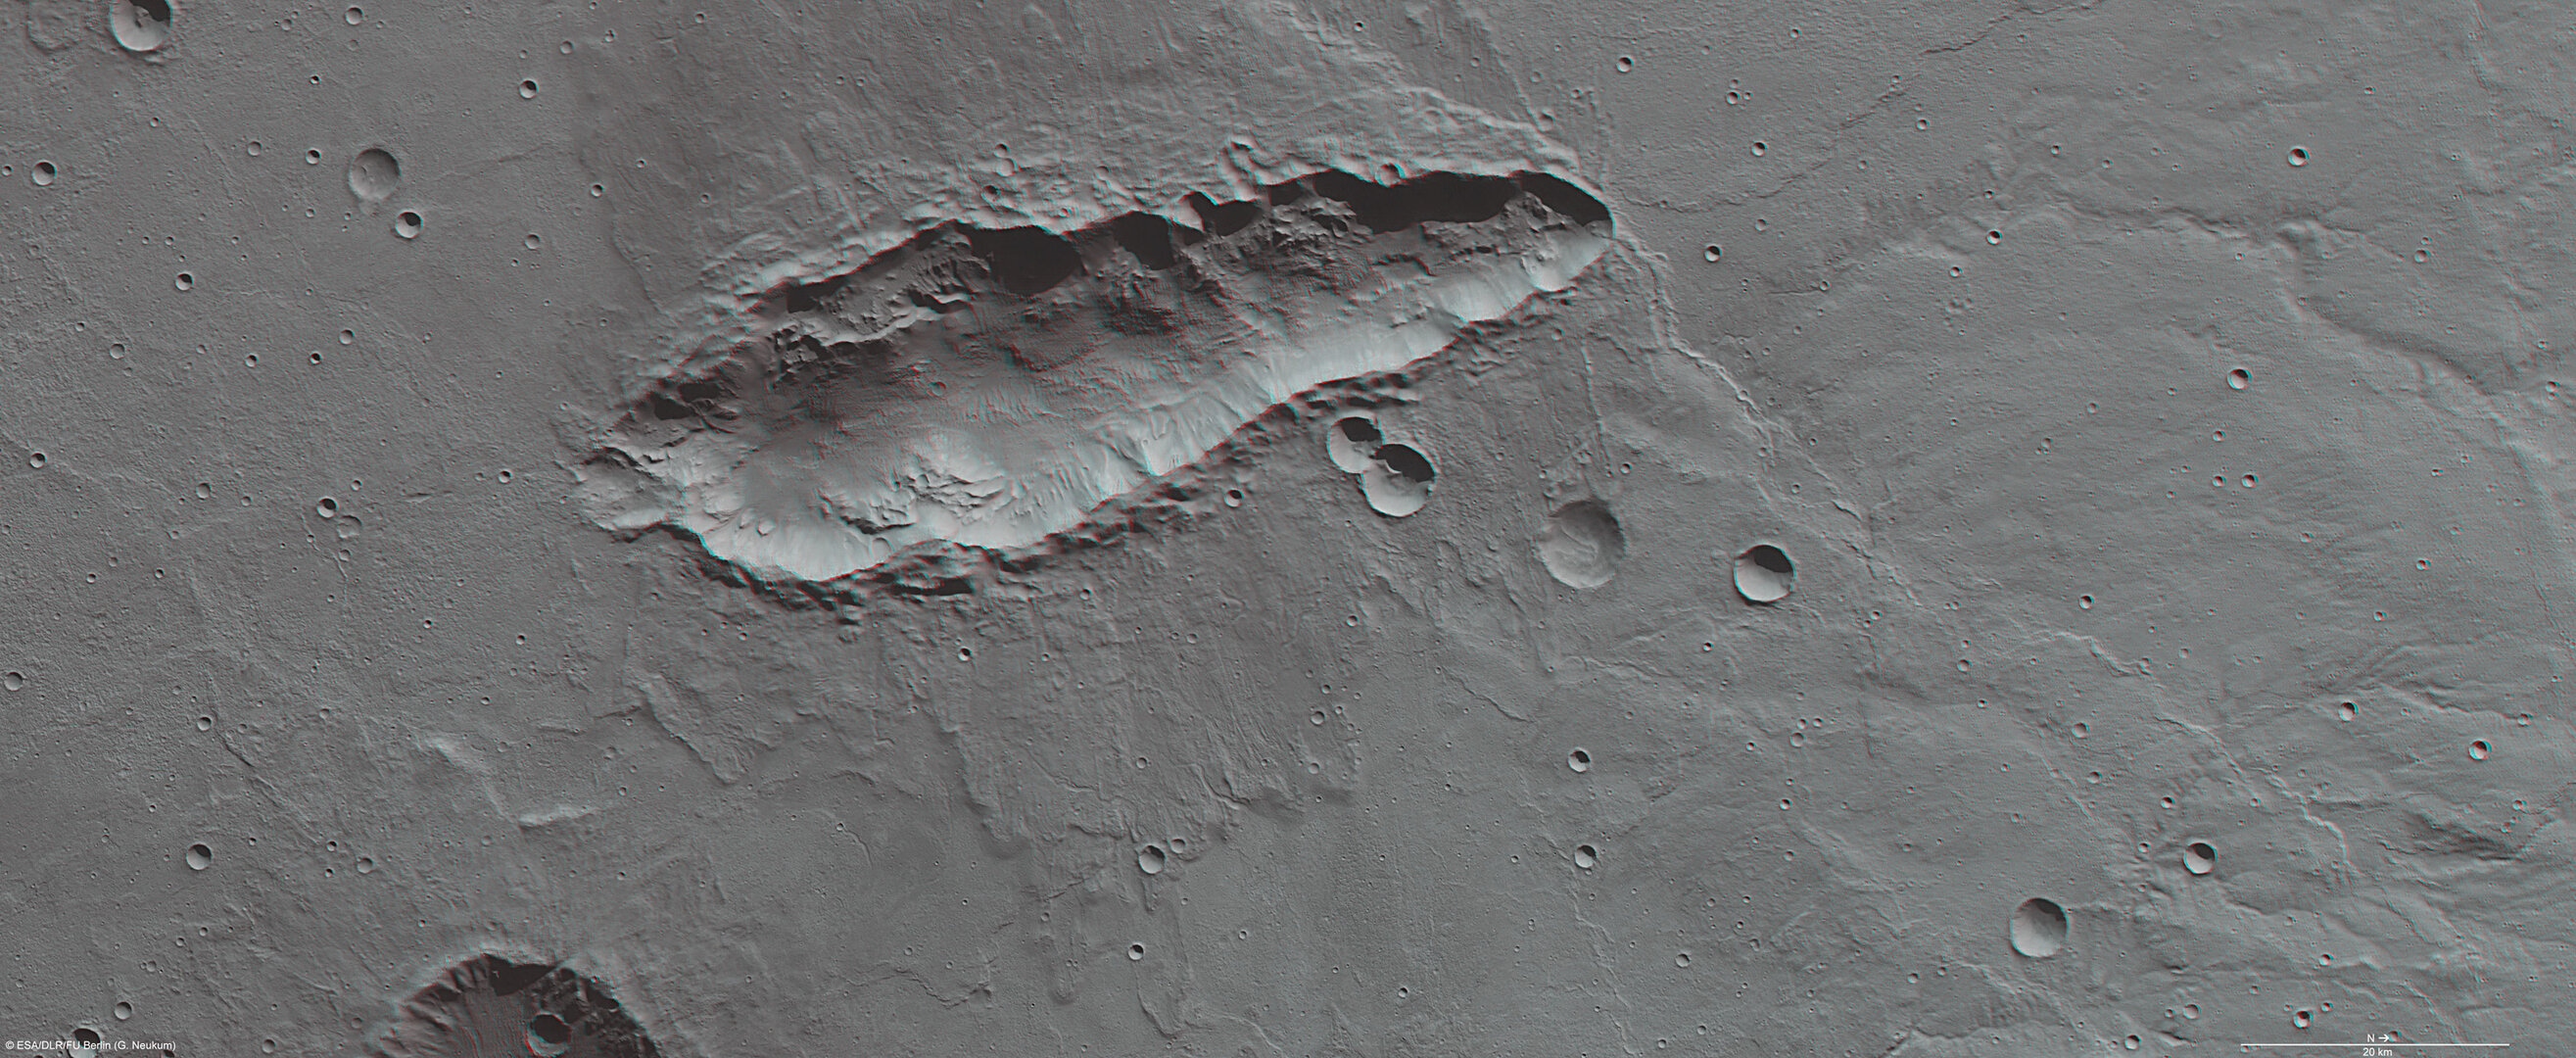 Elongated crater in 3D